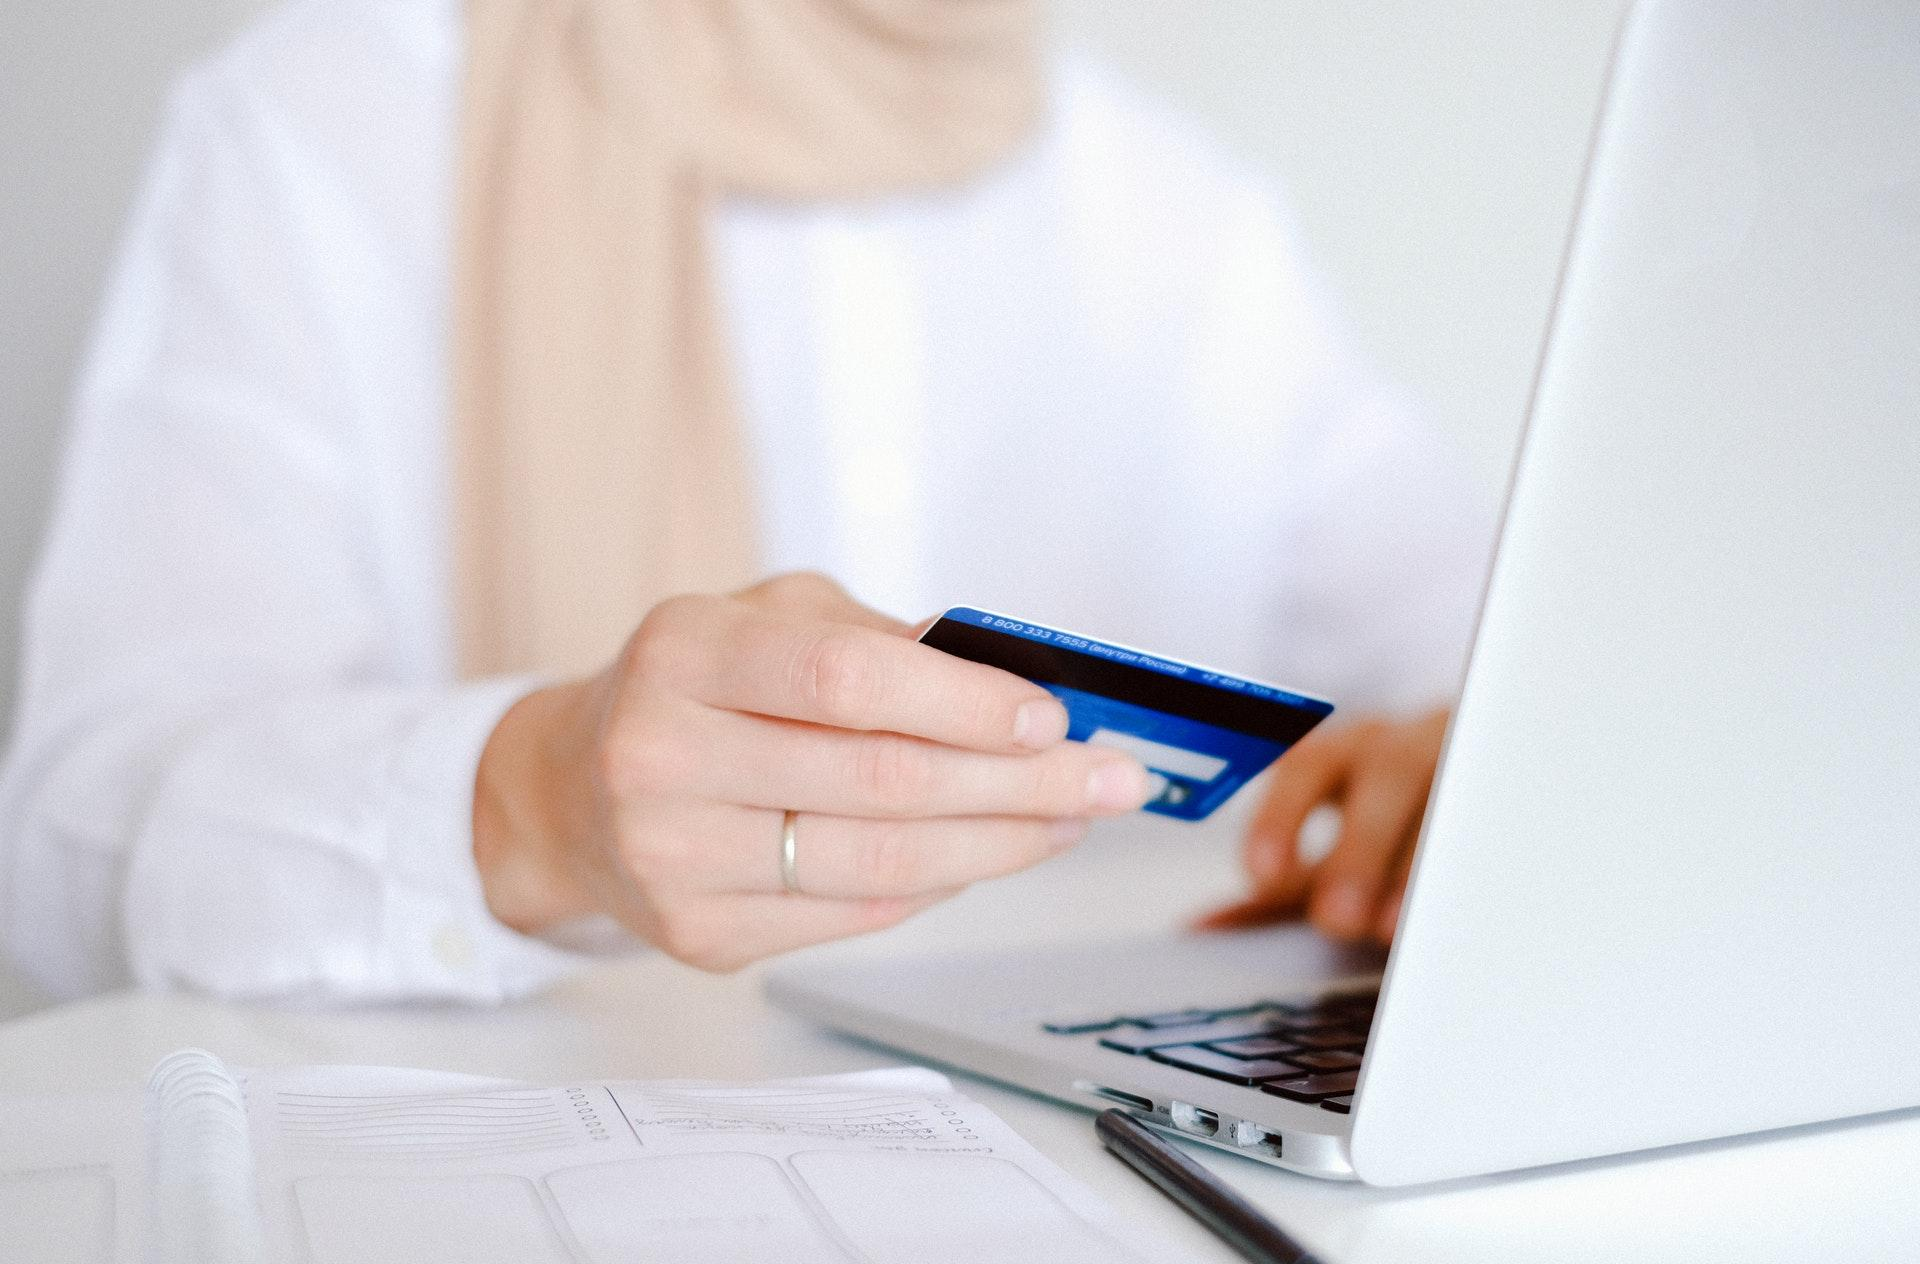 6 Tips & Tricks for Online Shoppers in 2021